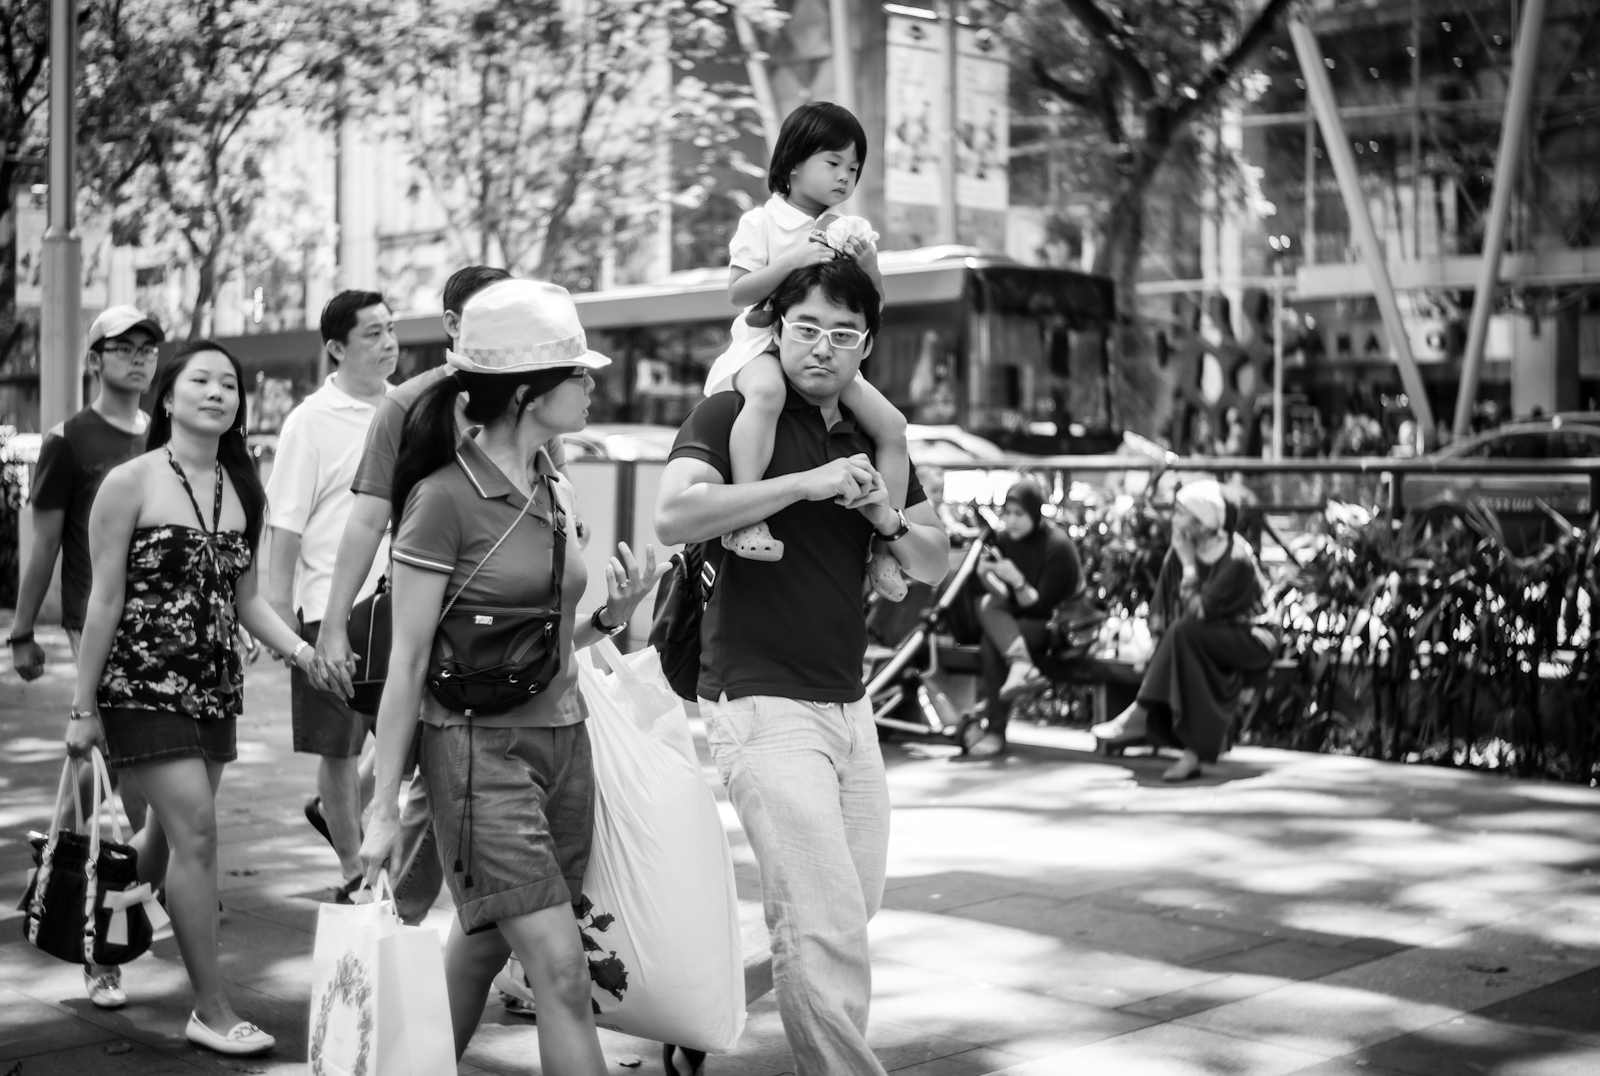 Street photography - family walking along Orchard Road